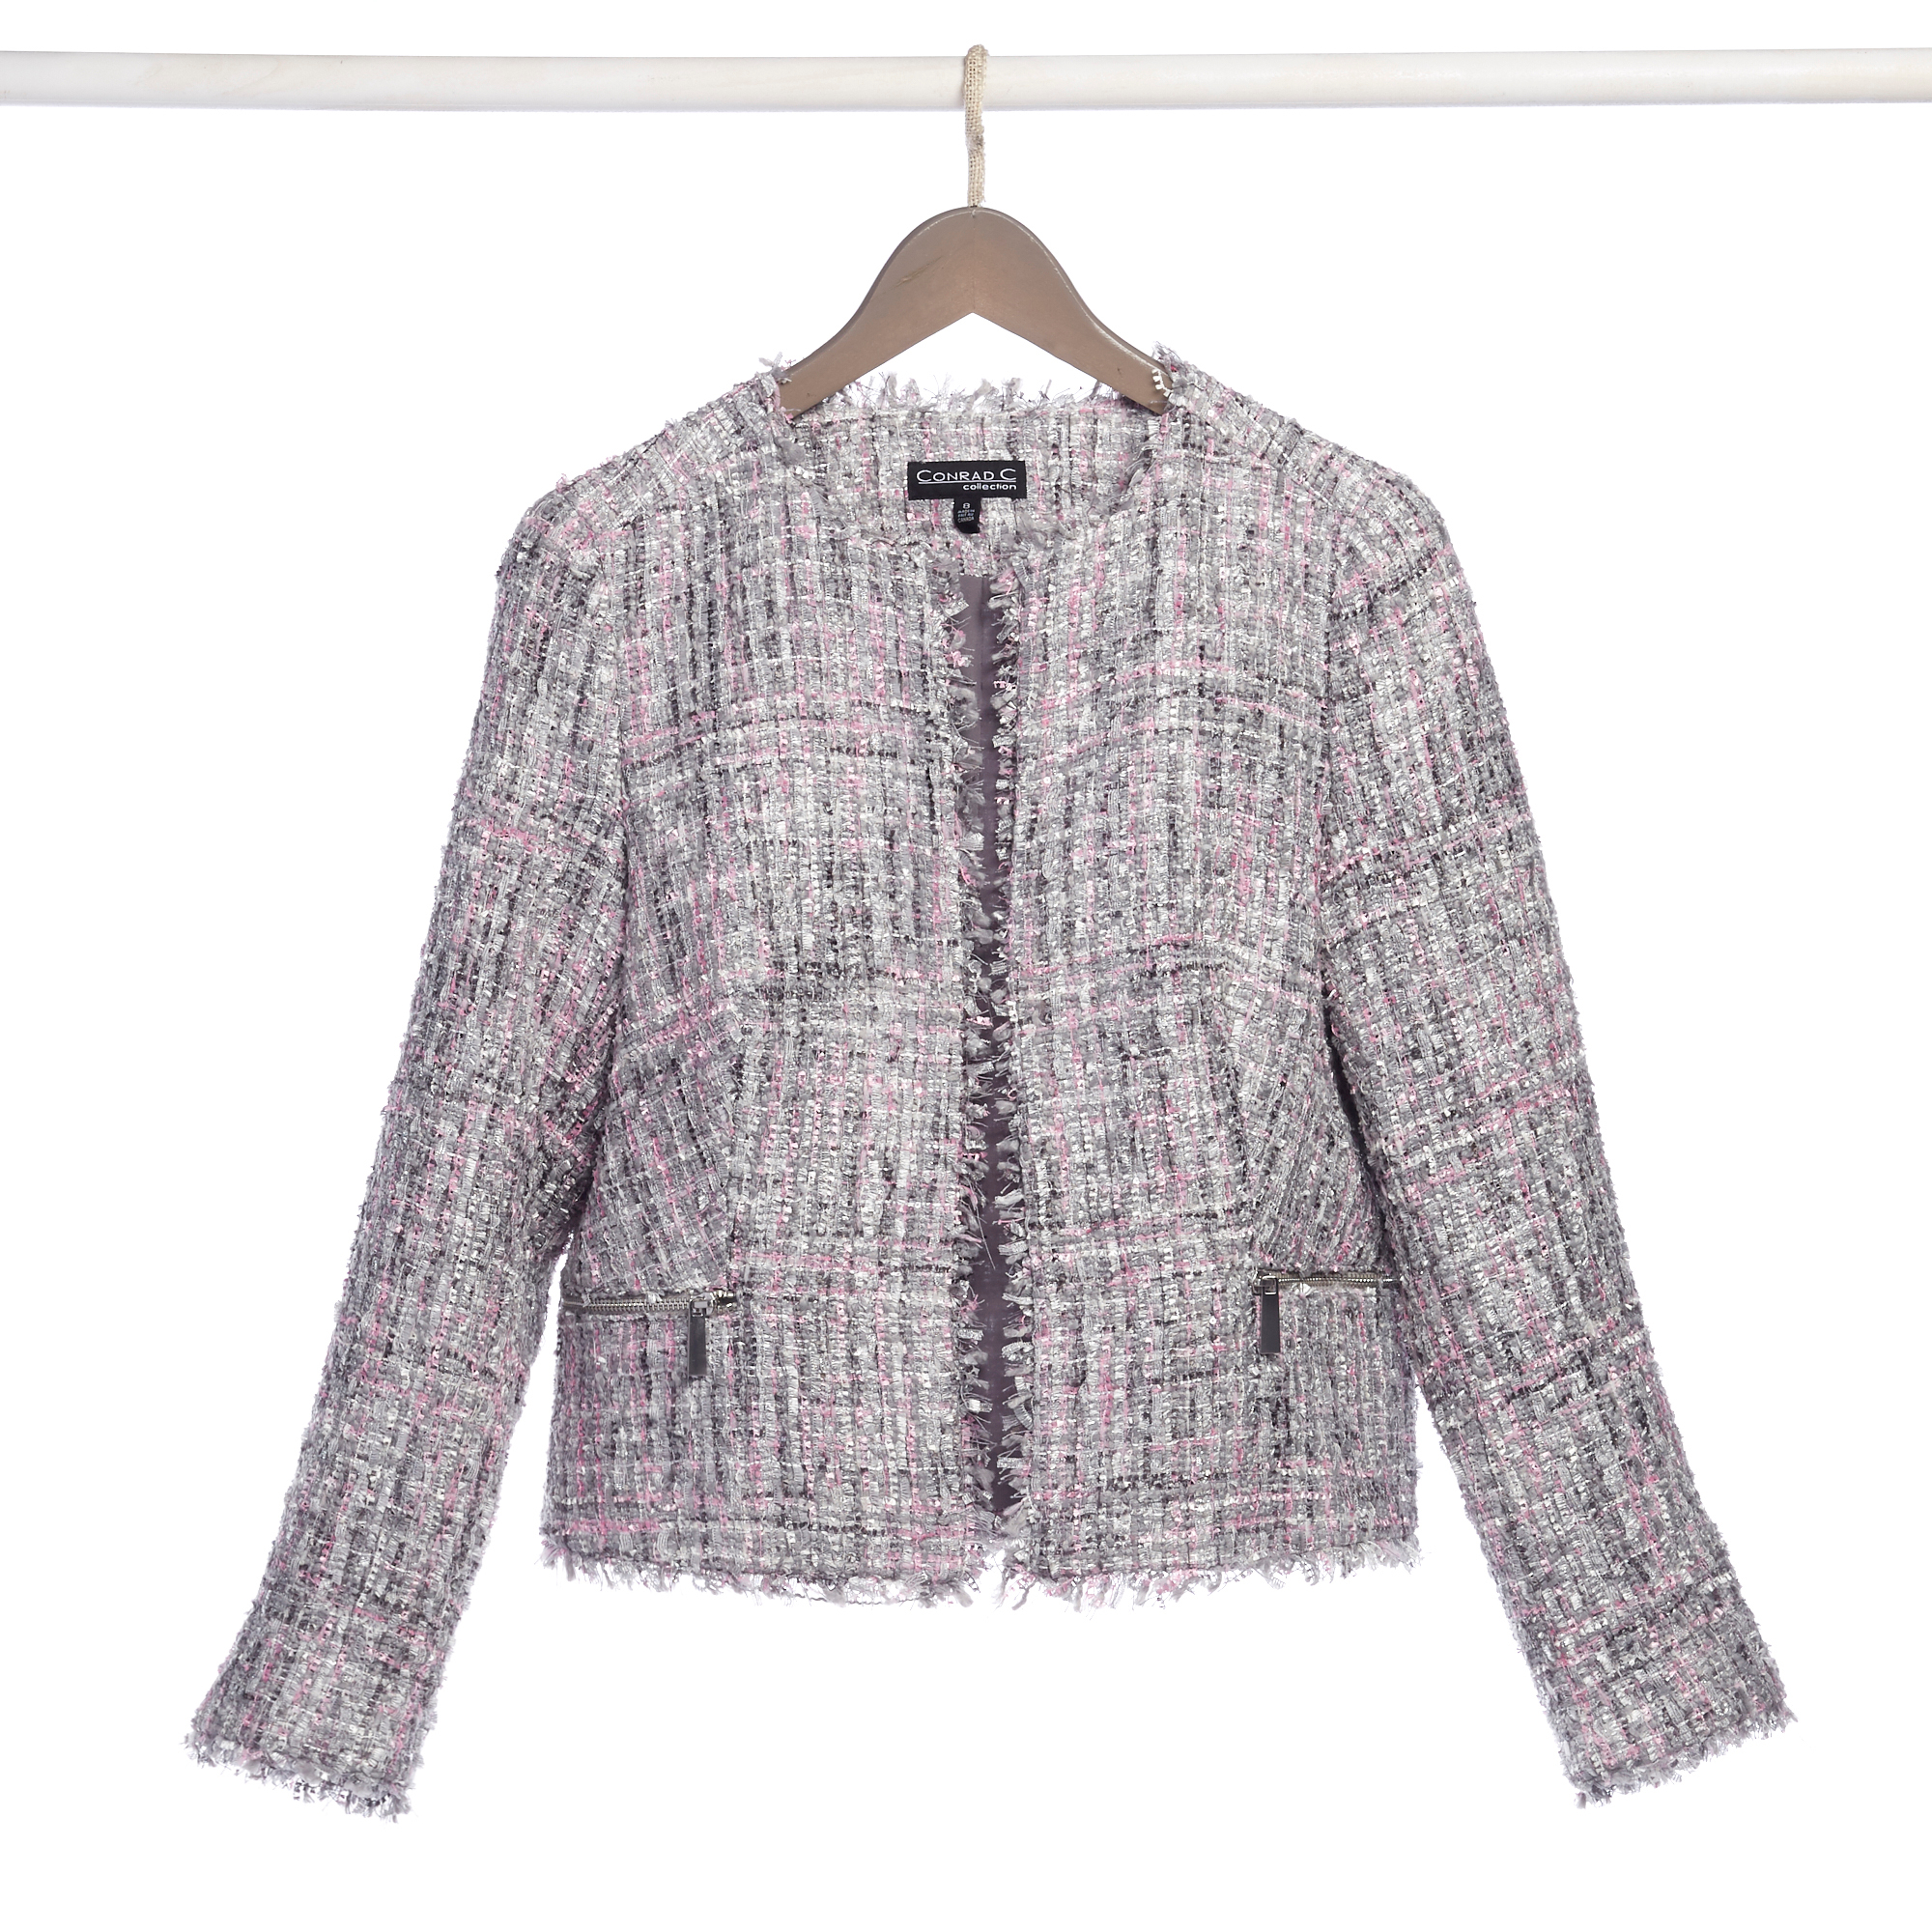 Marissa Tweed Jacket